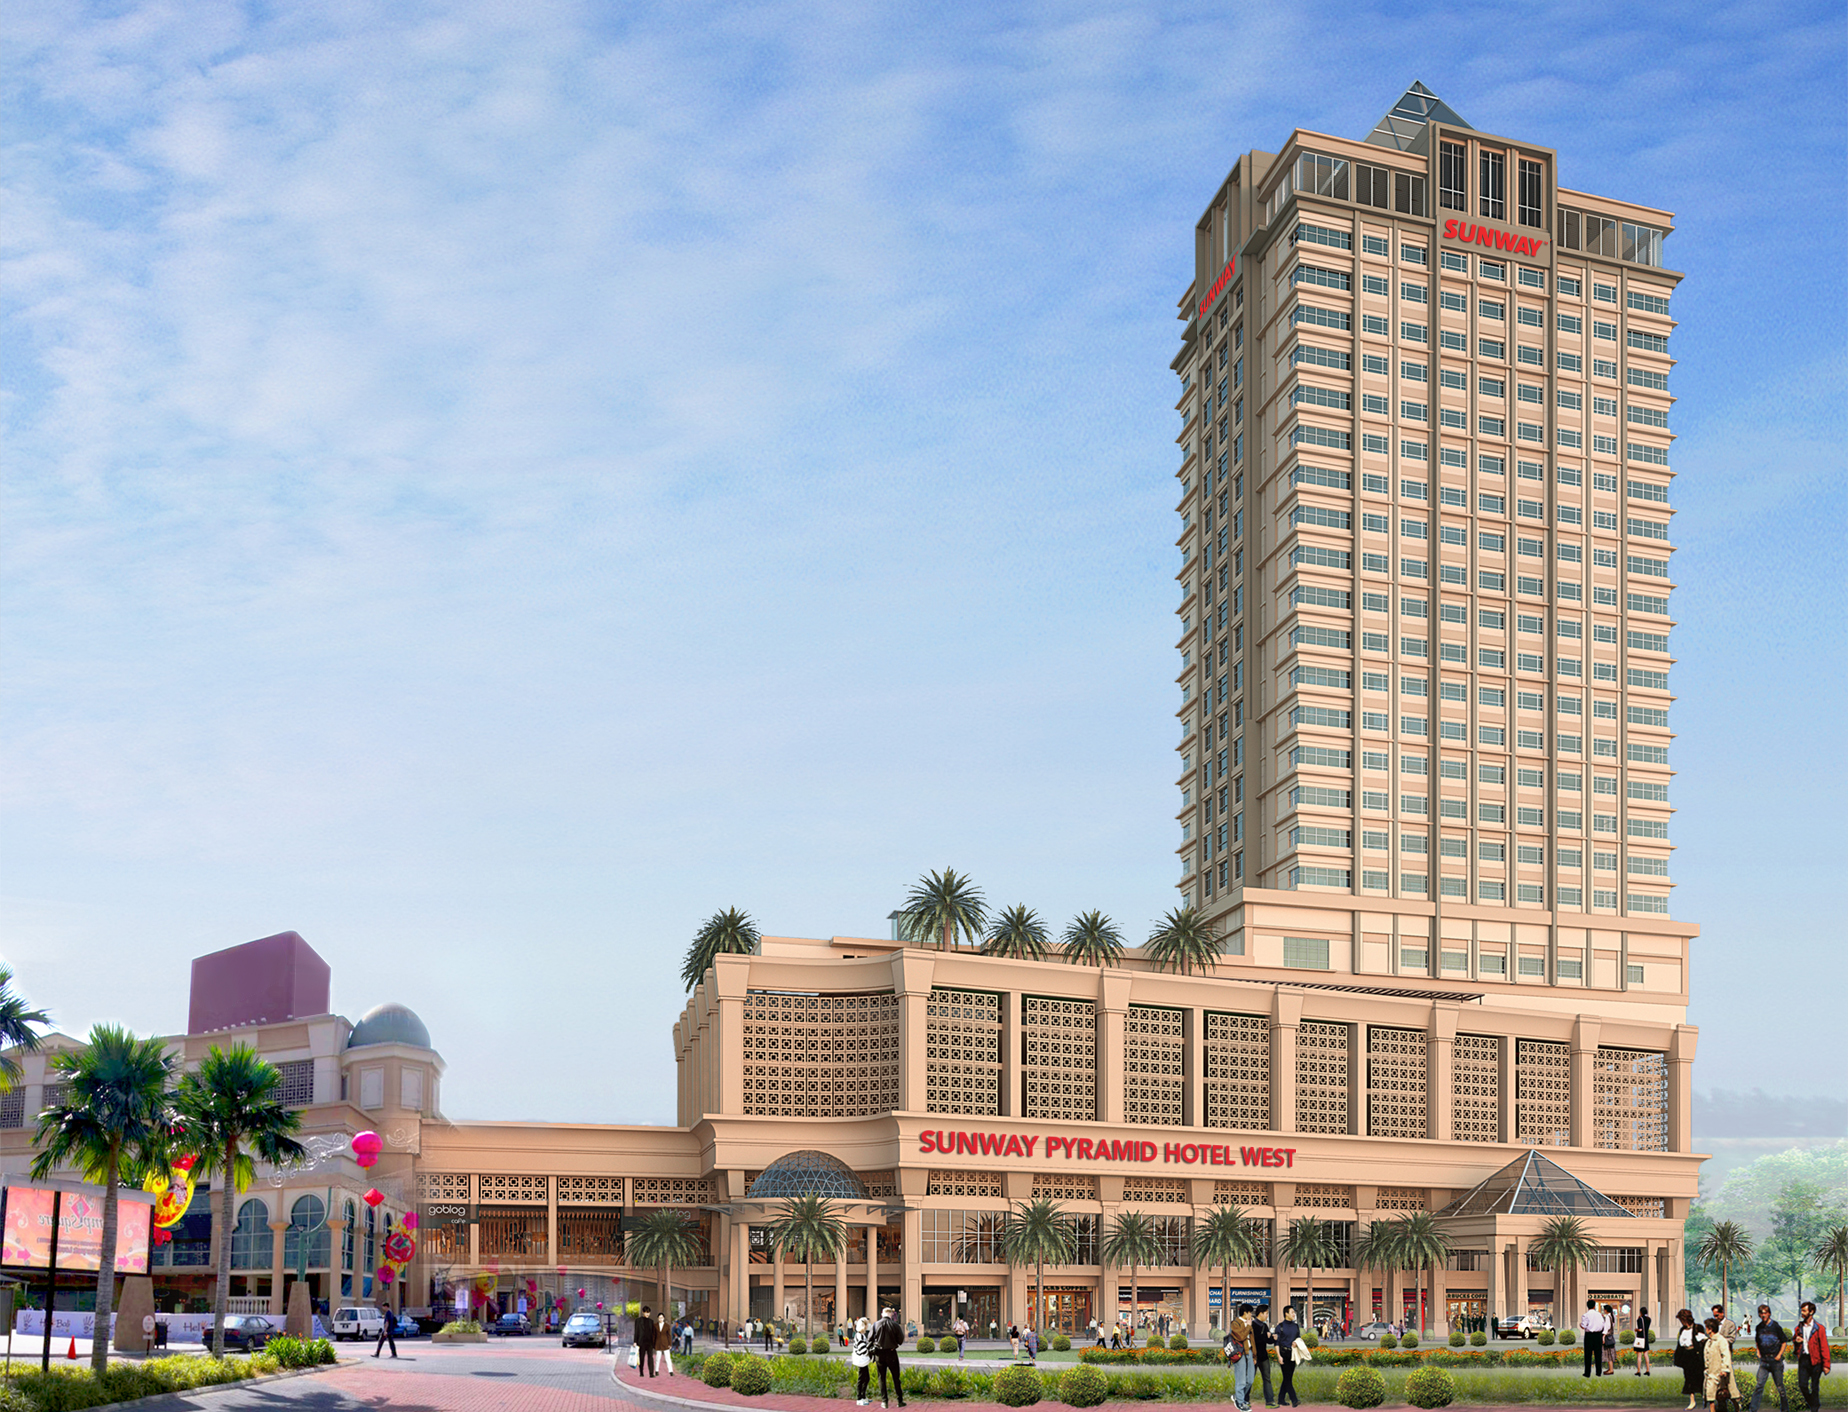 Sunway clio hotel hotels in sunway selangor for Sunway pyramid hotel swimming pool